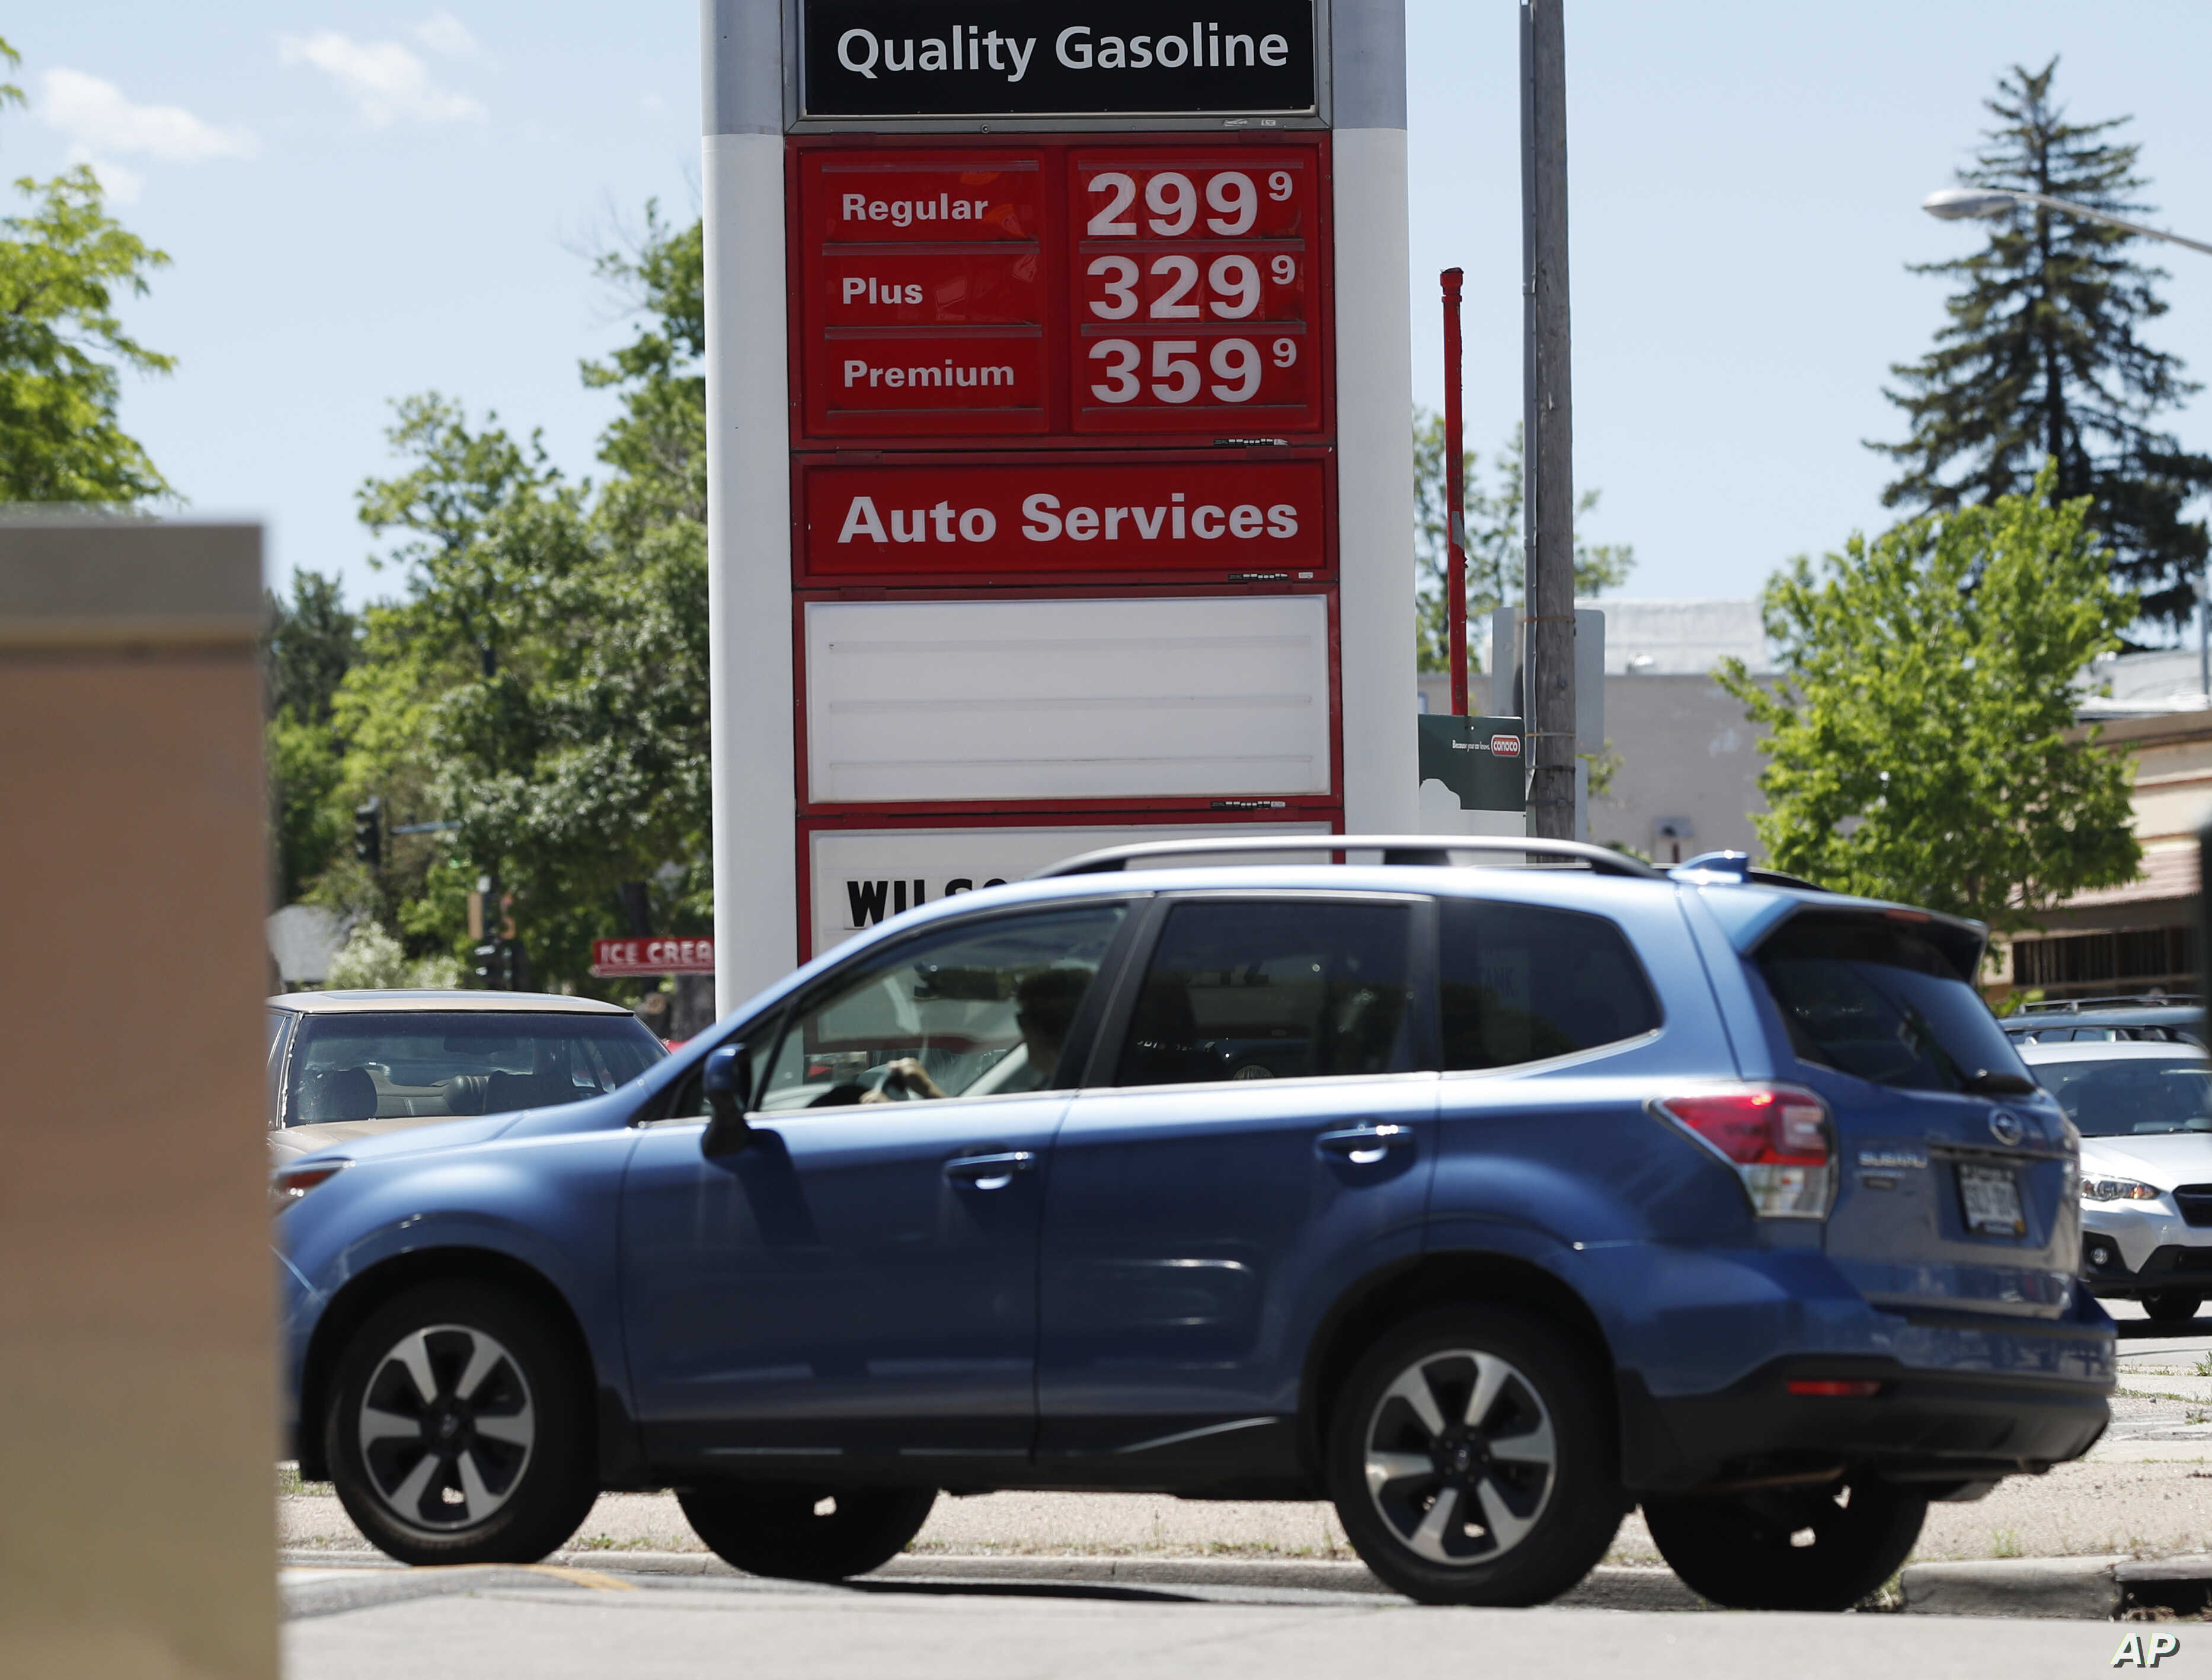 Prices for the three grades of gasoline light up the pump at a Conoco station, May 25, 018, in east Denver. Memorial Day vacationers are facing the highest prices at the pumps since 2014 as the average cost of a gallon of regular unleaded is just les...